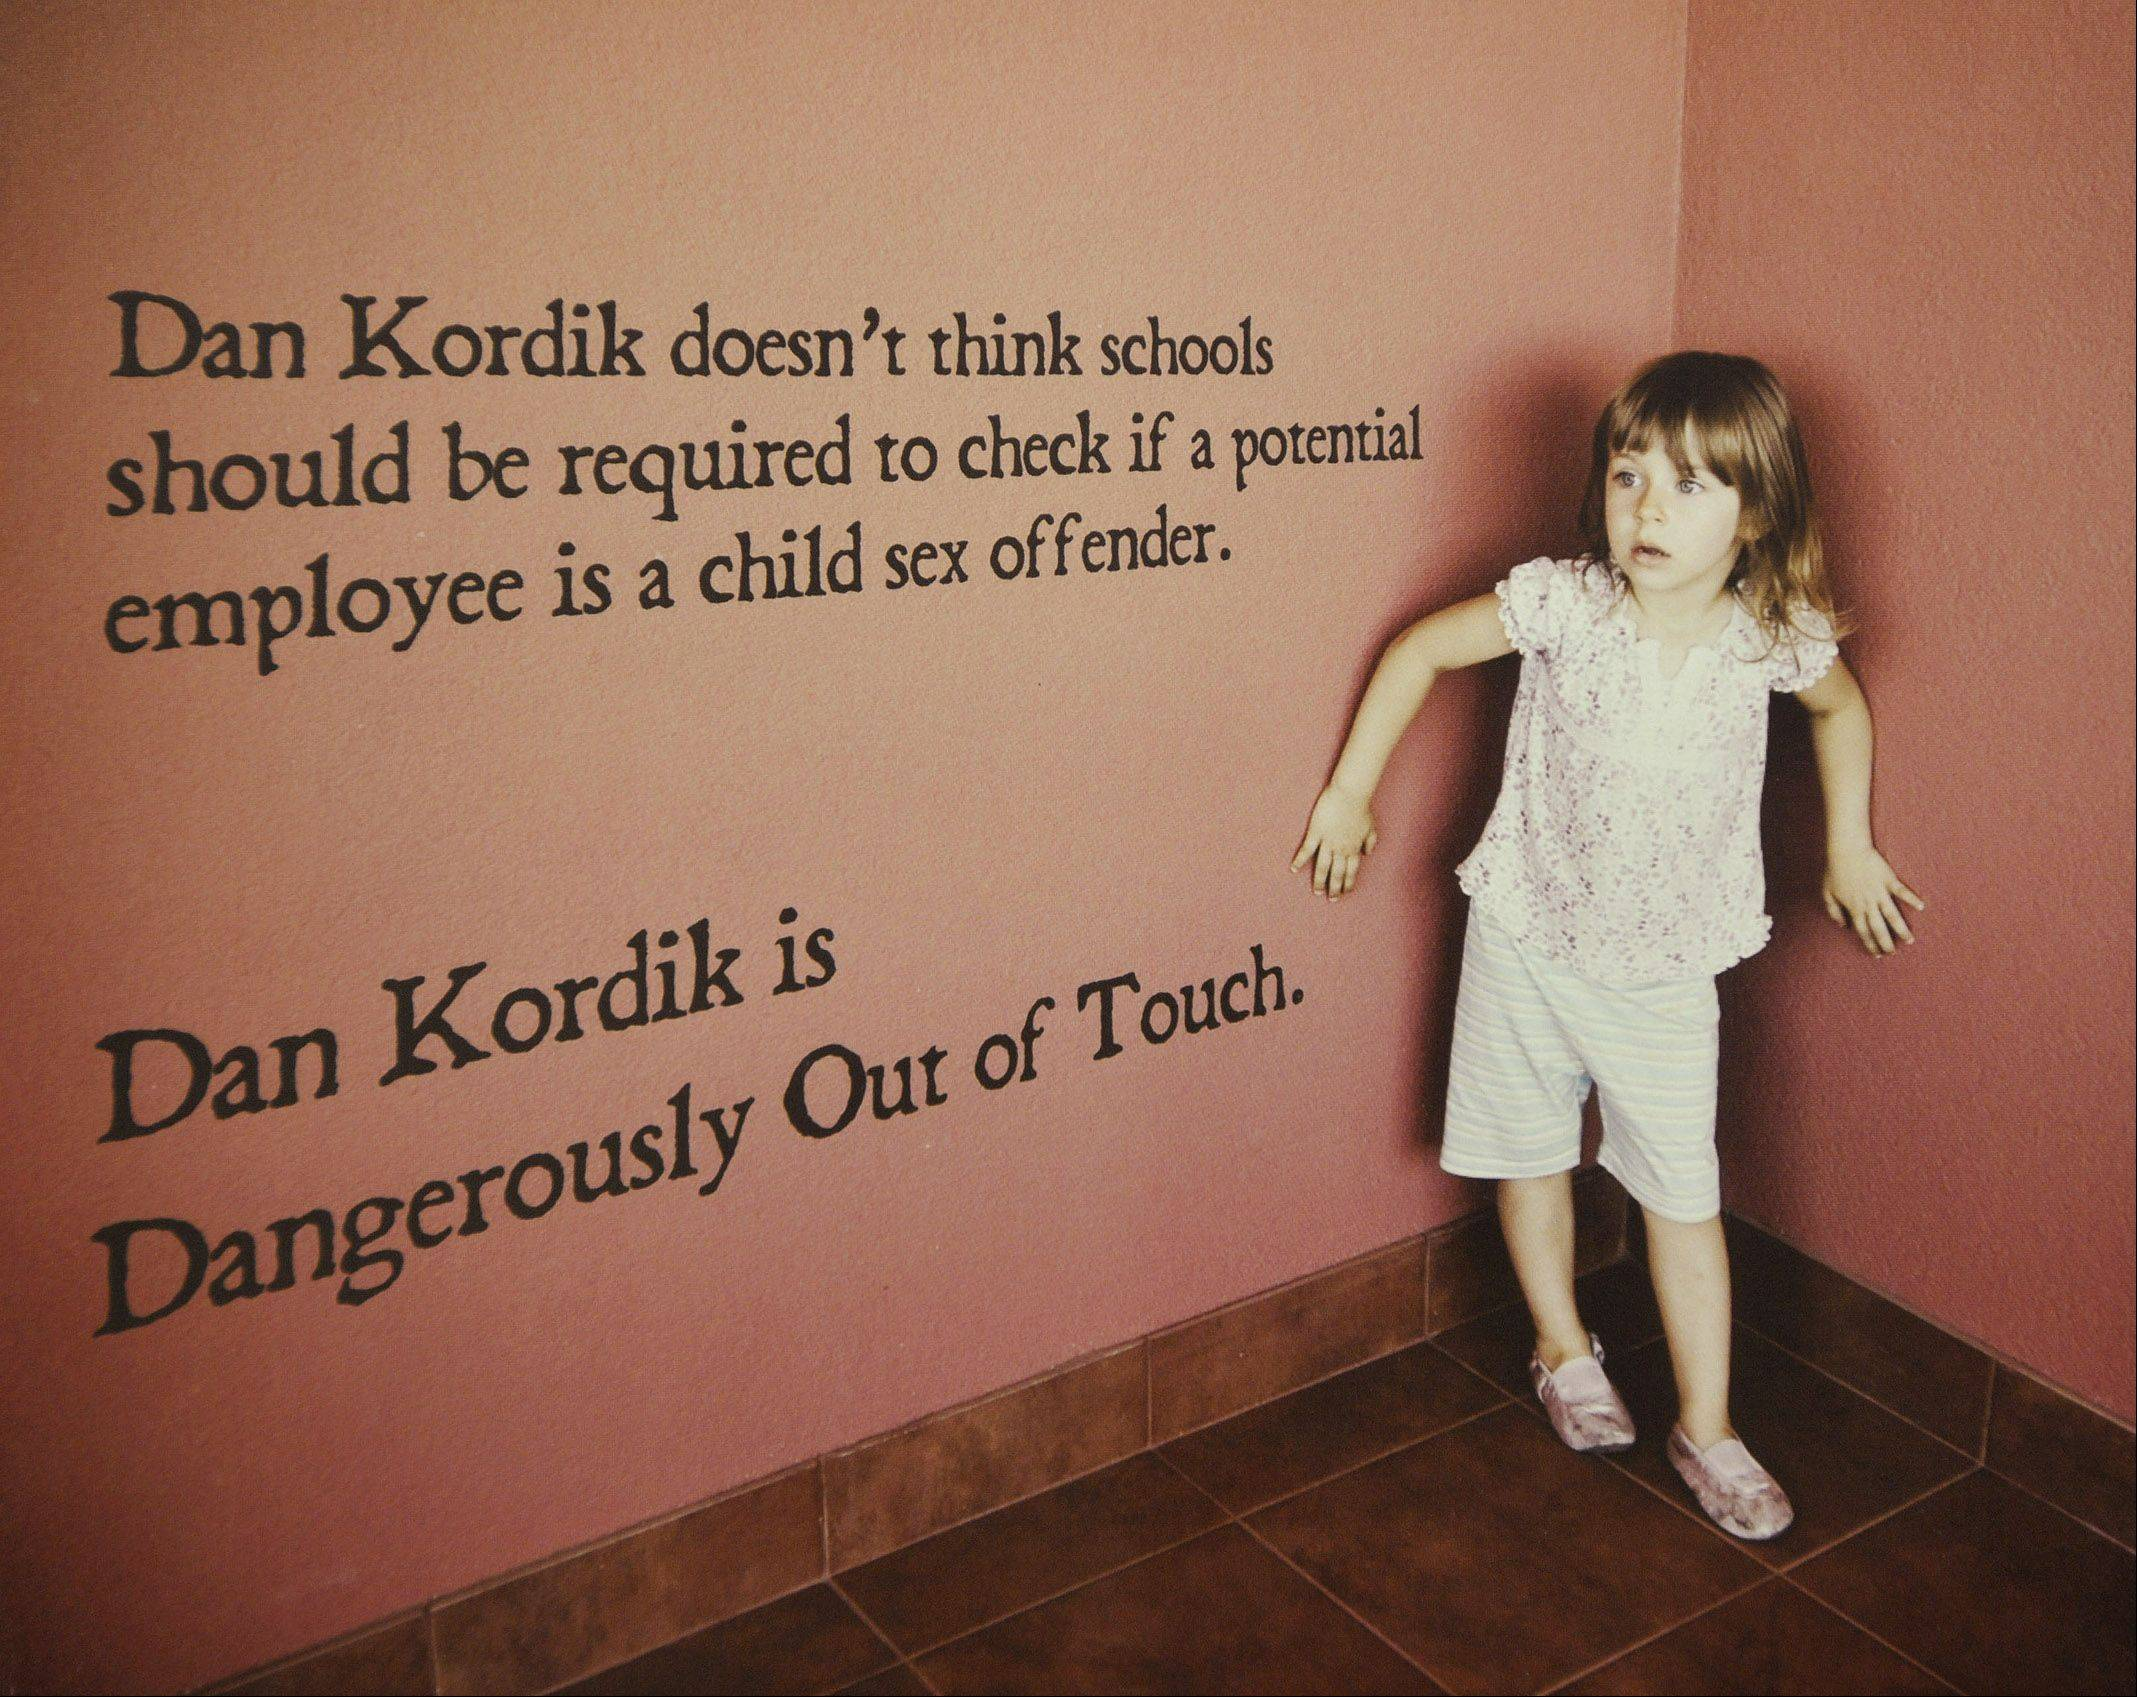 One of Democrat Deb Conroy's advertisements accuses her Republican opponent, Dan Kordik, of being against background checks on new school employees to see if they are sex offenders. The charge is based on a 20-year-old vote Kordik made as a Villa Park school board member in opposing unfunded state mandates.